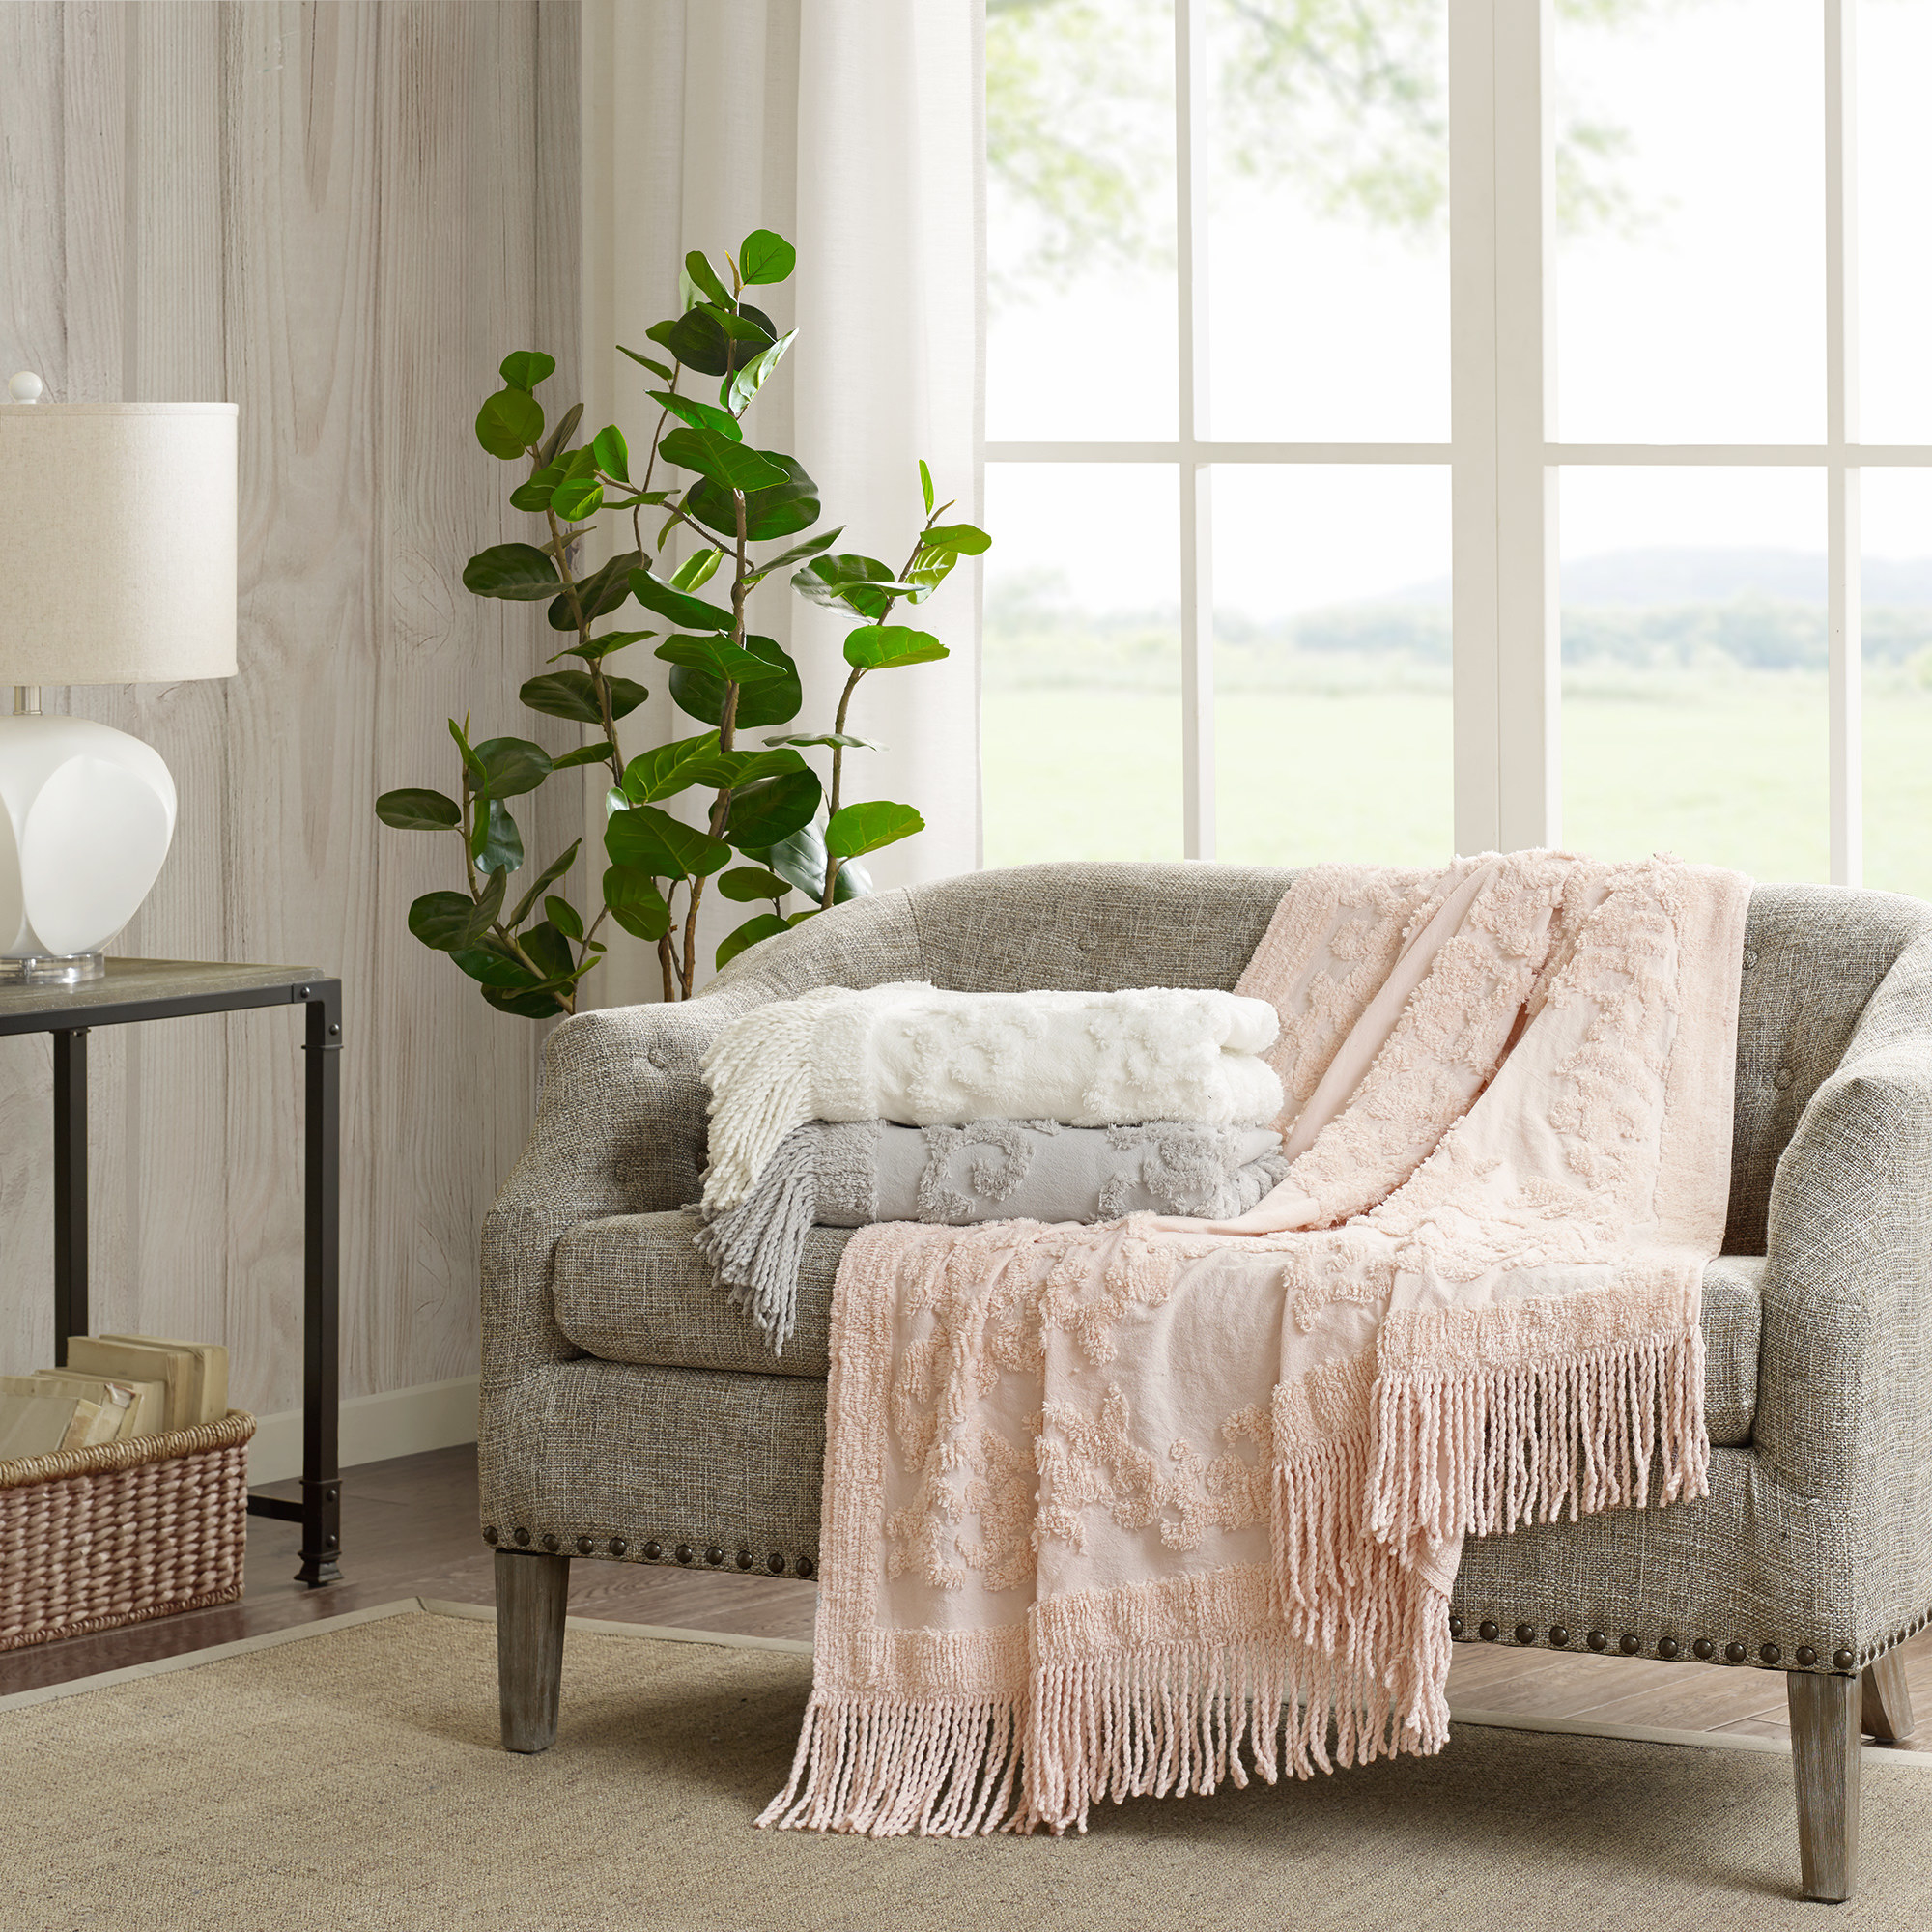 The blankets in pink, gray and white